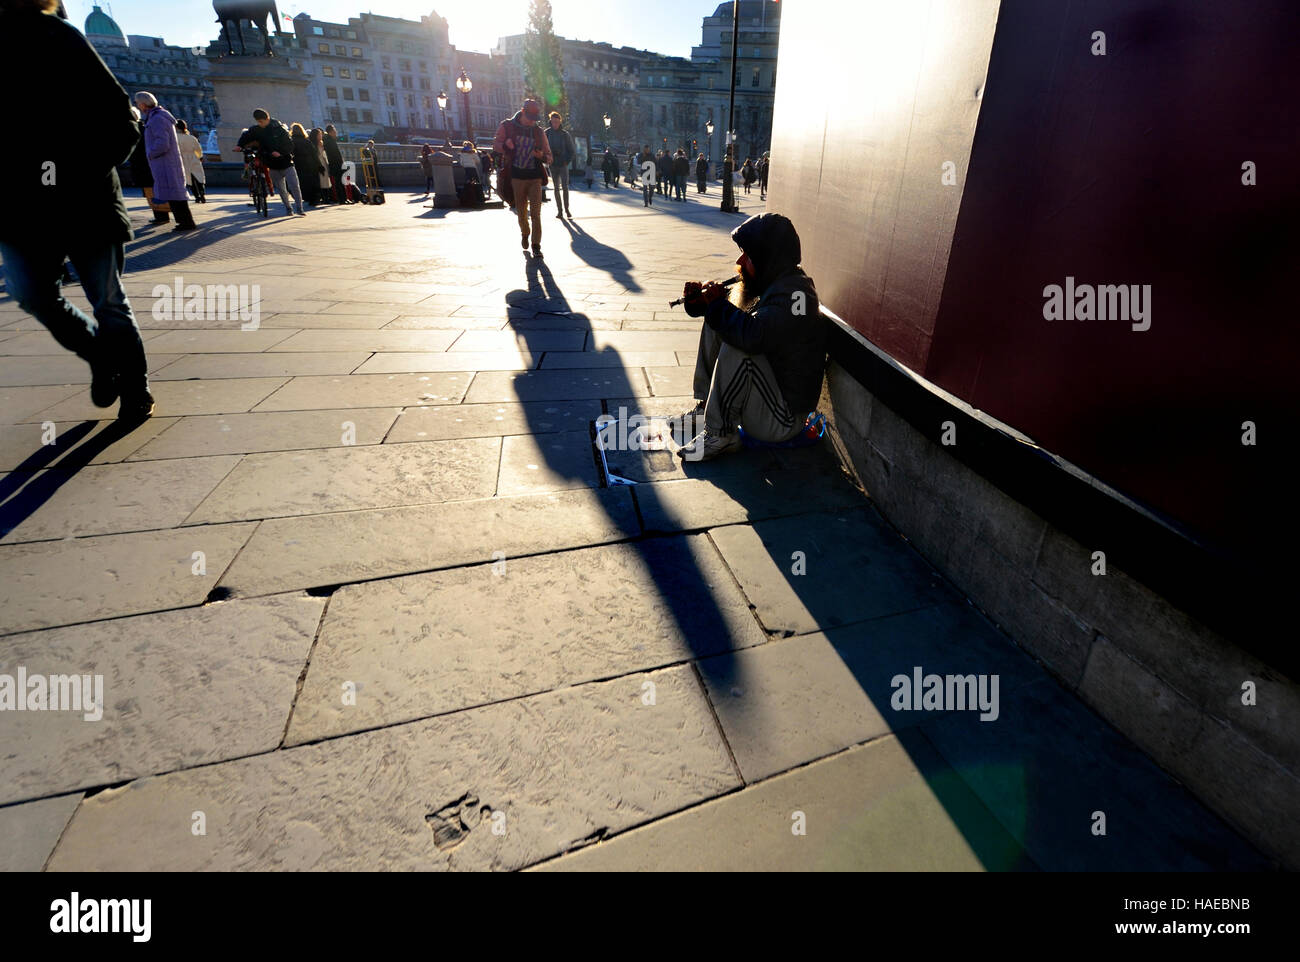 London, England, UK. Homeless (possibly) man playing the recorder in Trafalgar Square - Stock Image